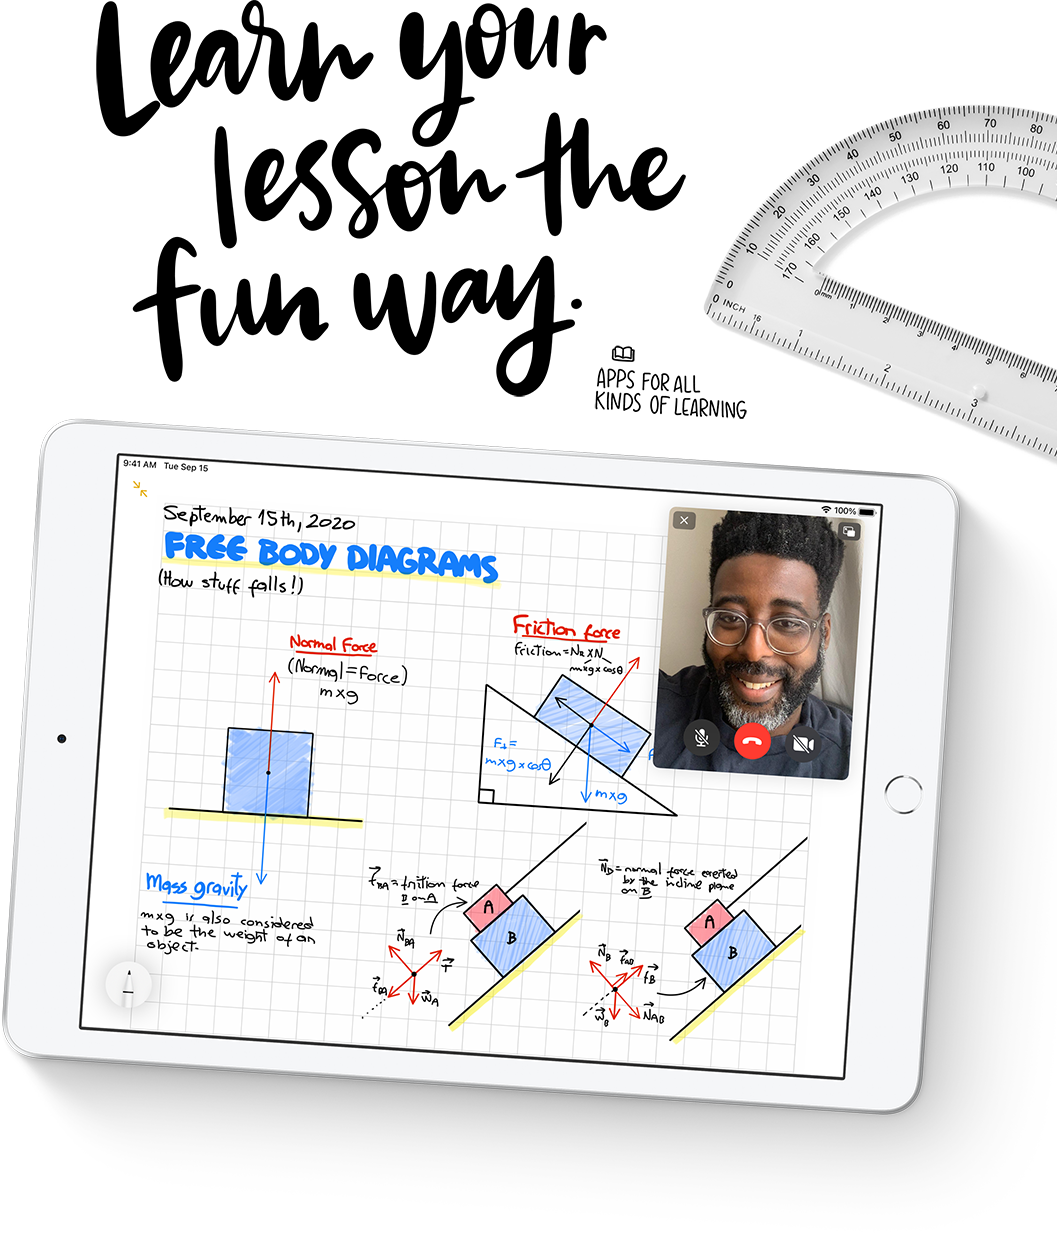 Online learning becomes even easier with iPad 8 and tons of apps from the App Store.